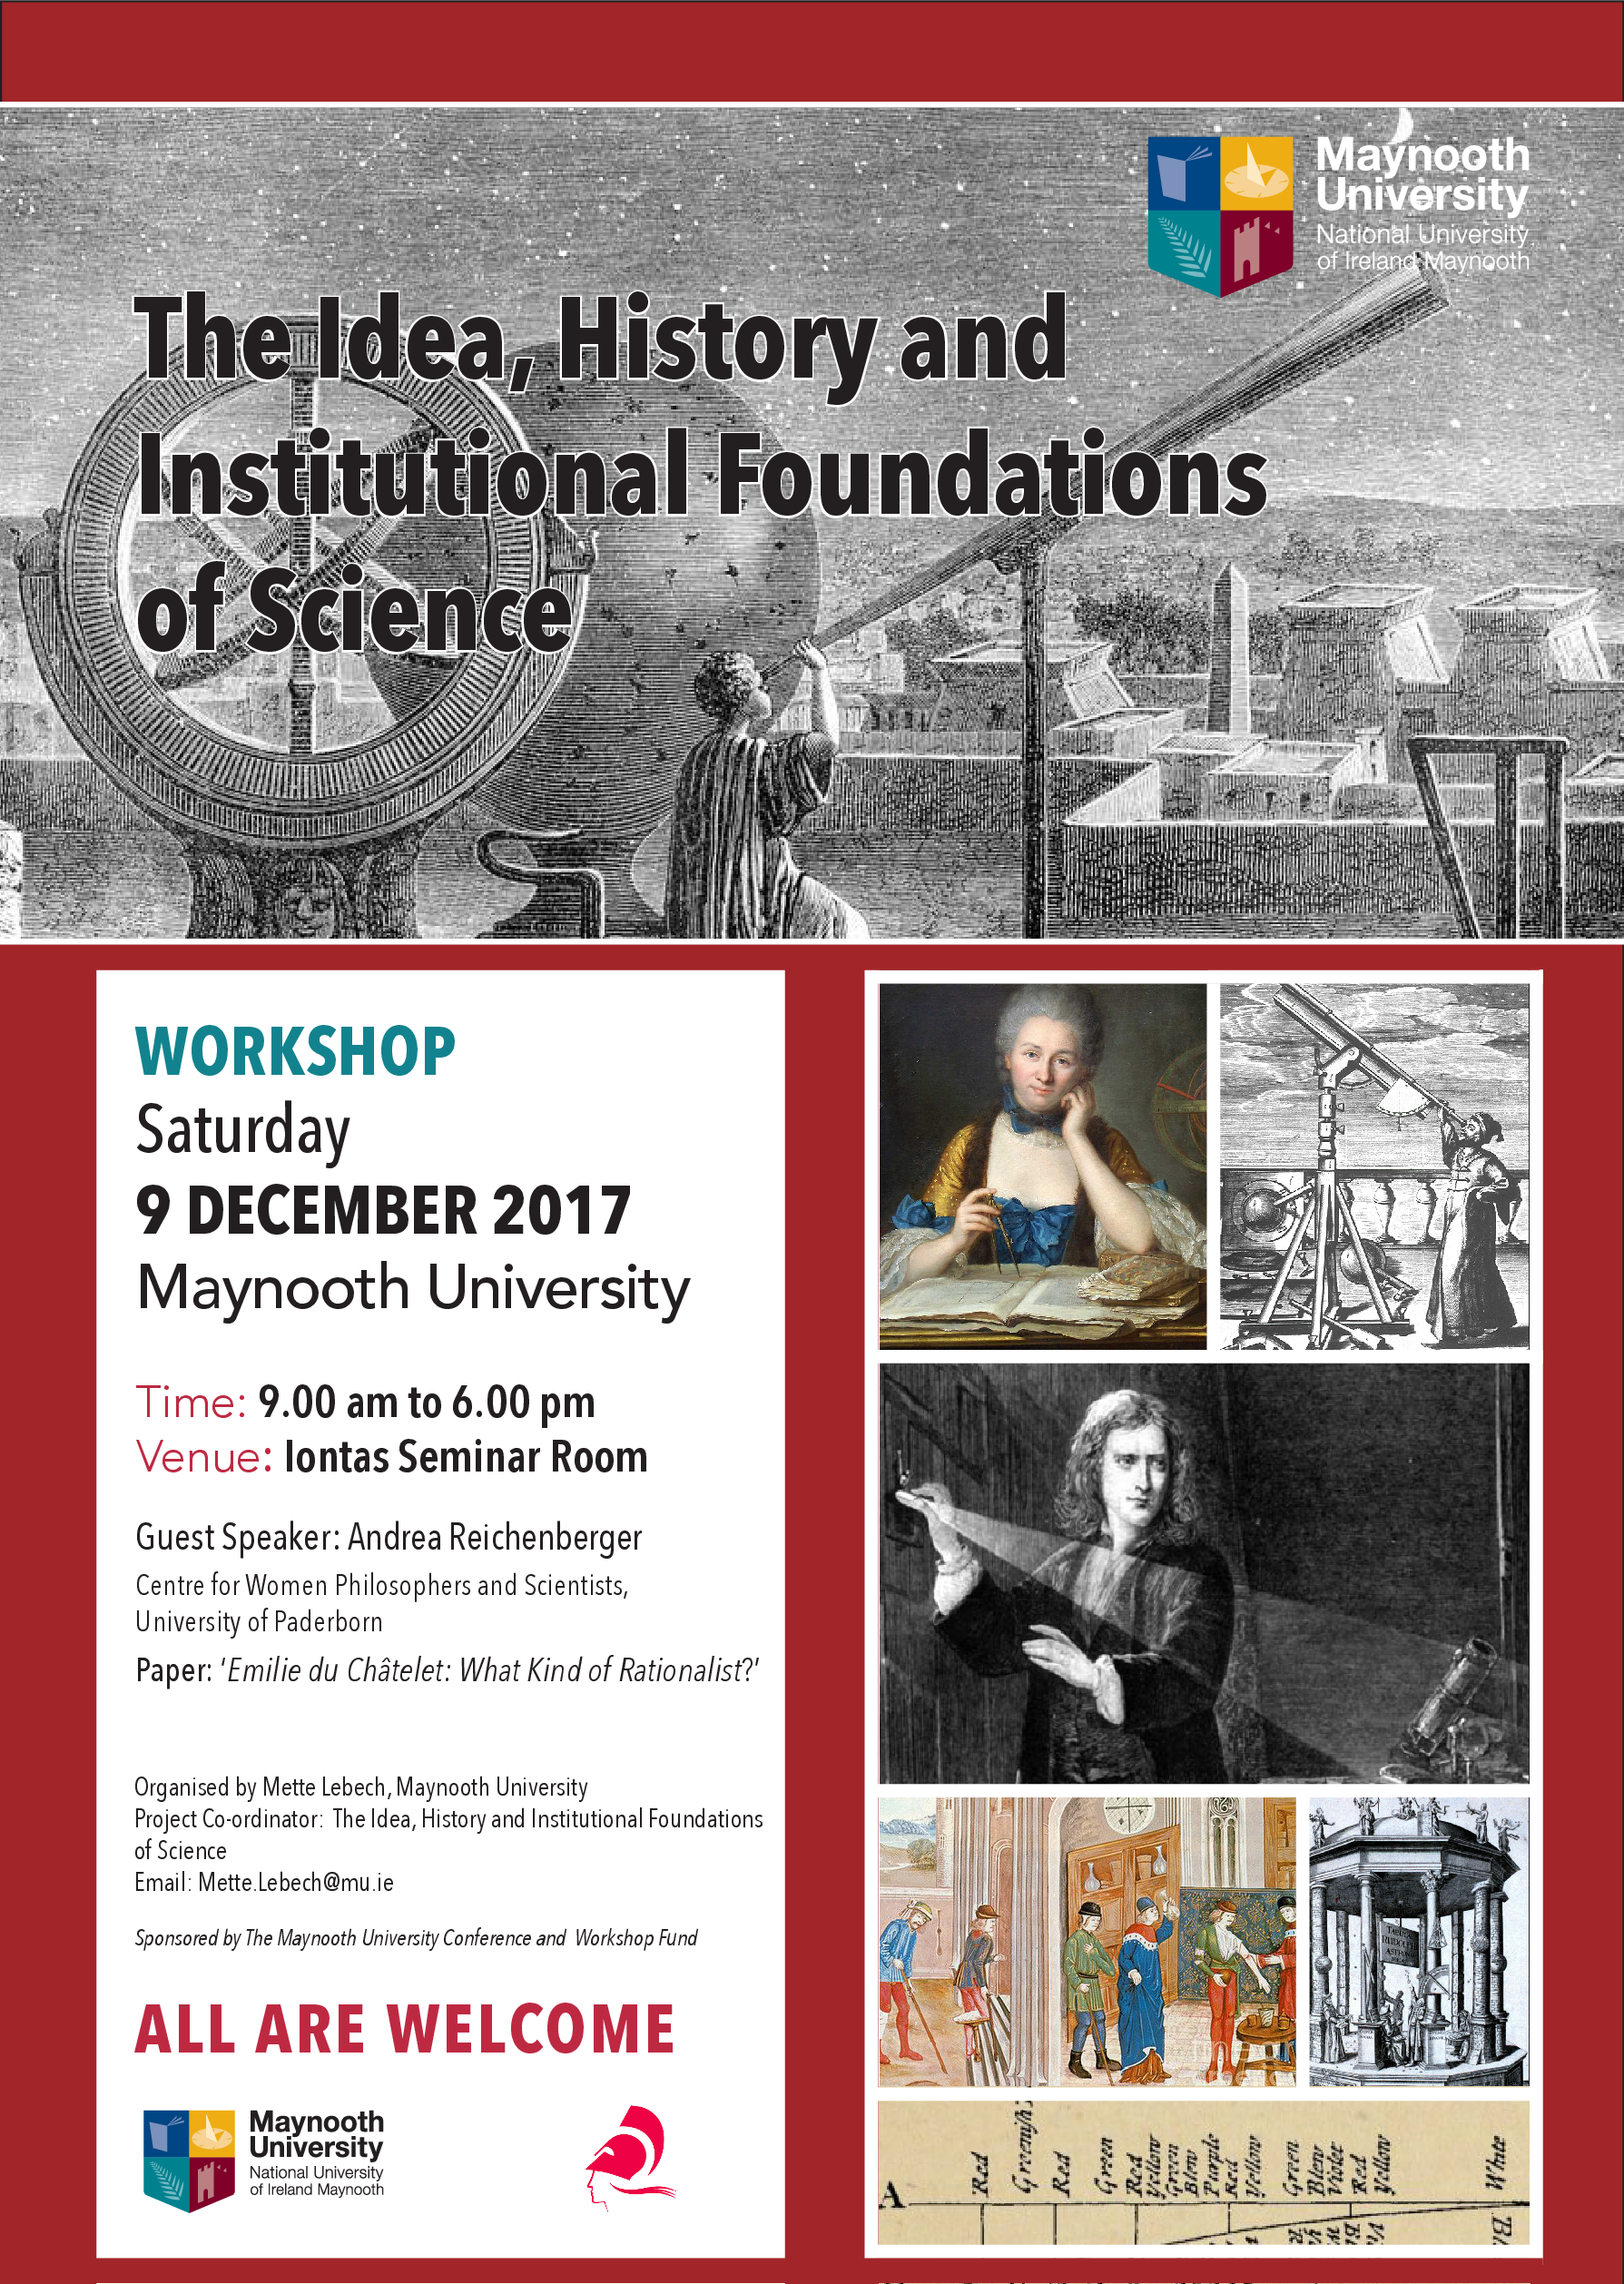 The Idea, History and Institutional Foundations of Science